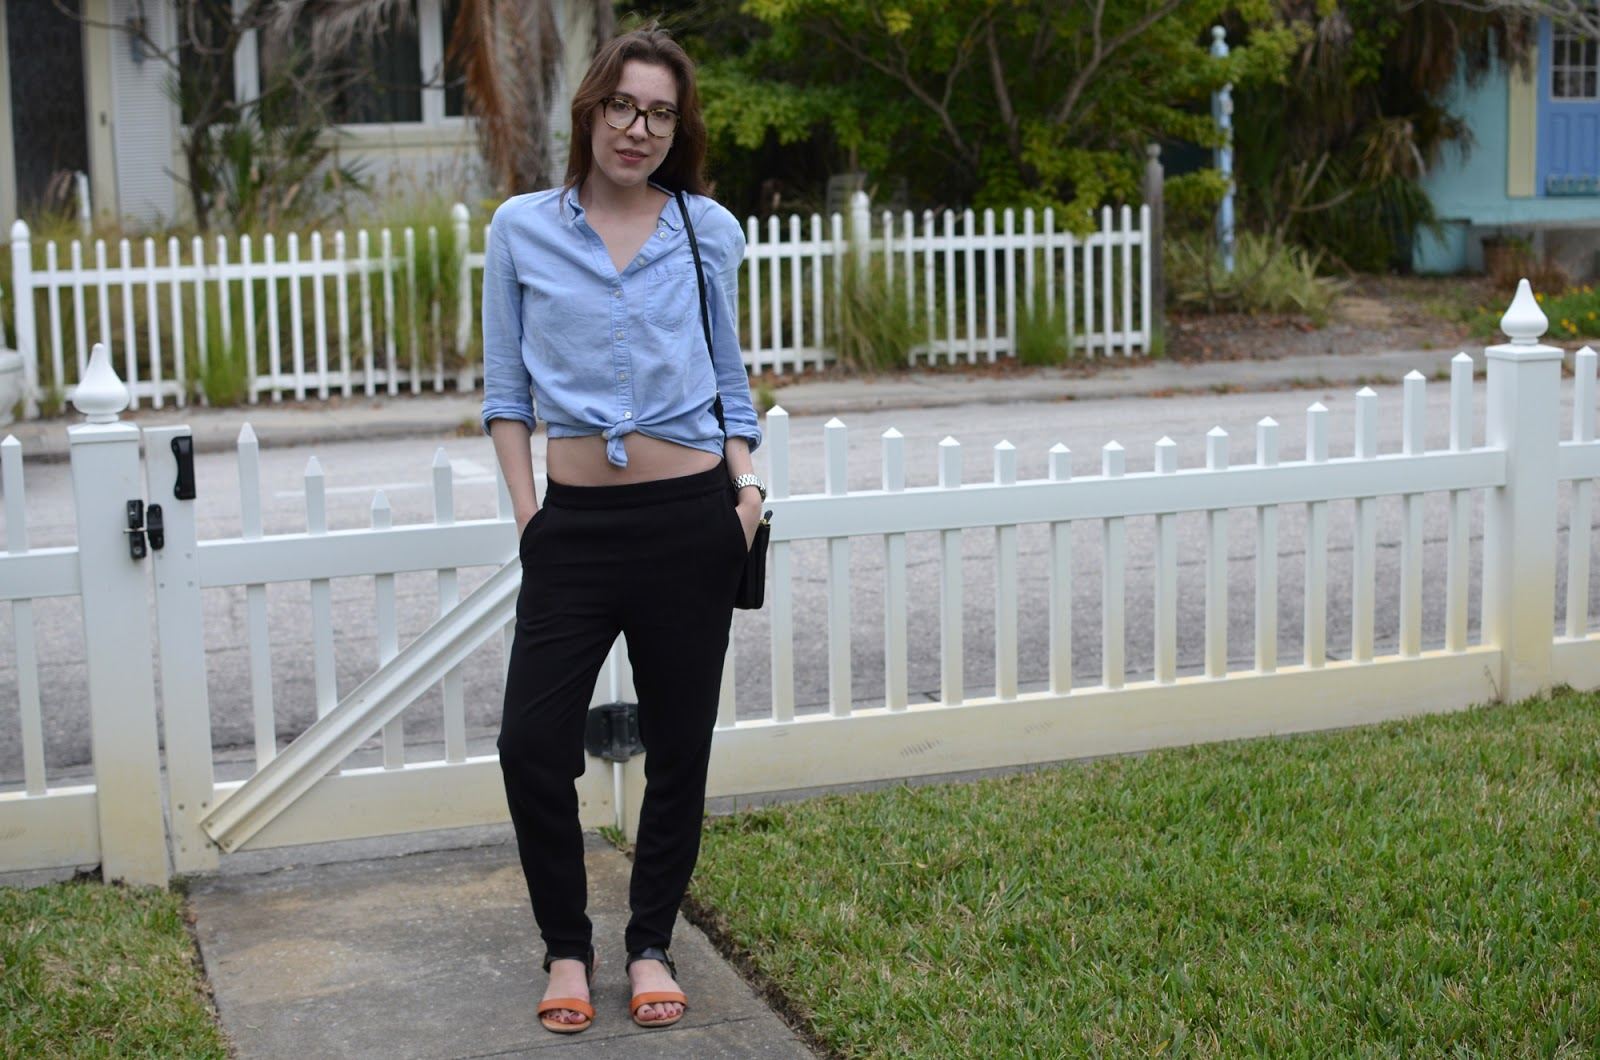 OOTD post about my love for crop tops... Shirt from The Gap, pants from H&M, and sandals from Target.